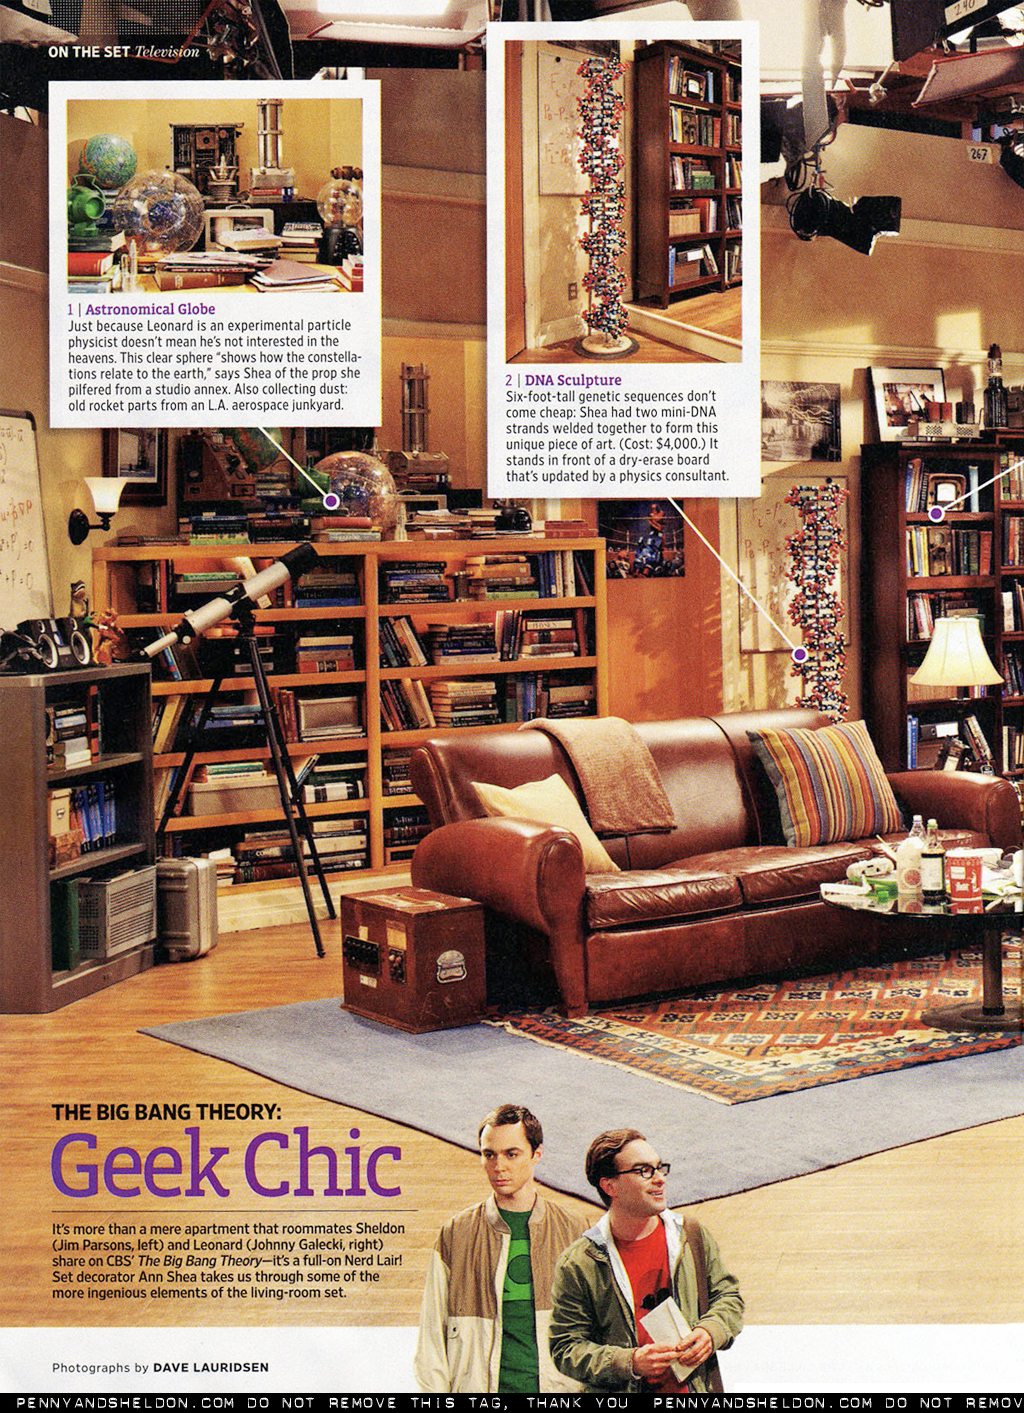 Geek Chic: EW magazine scans